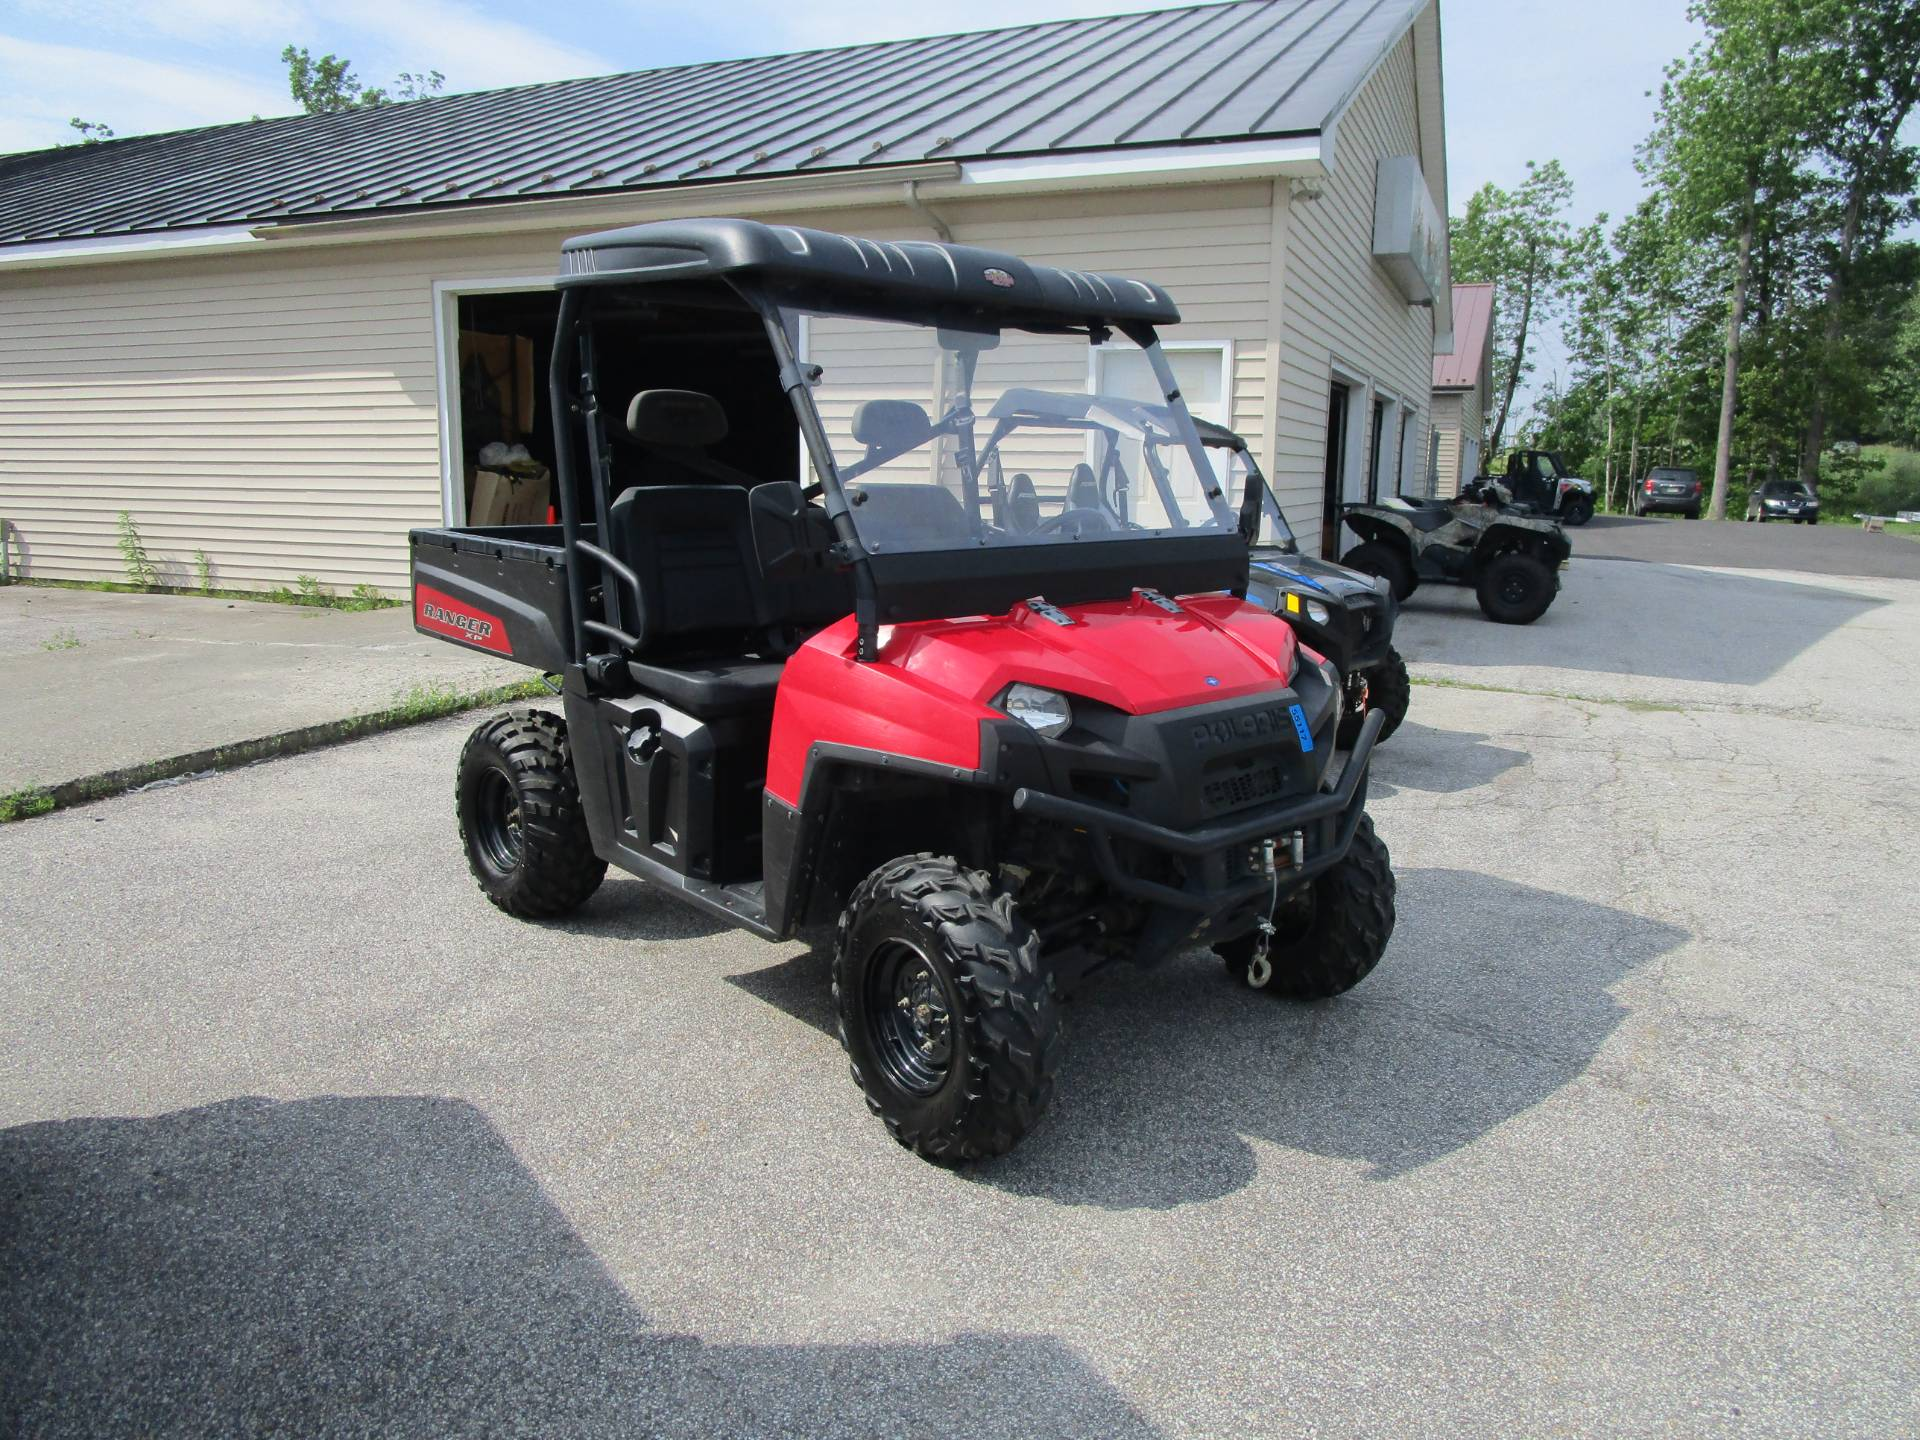 2010 Polaris Ranger 800 EFI XP® in Newport, Maine - Photo 2